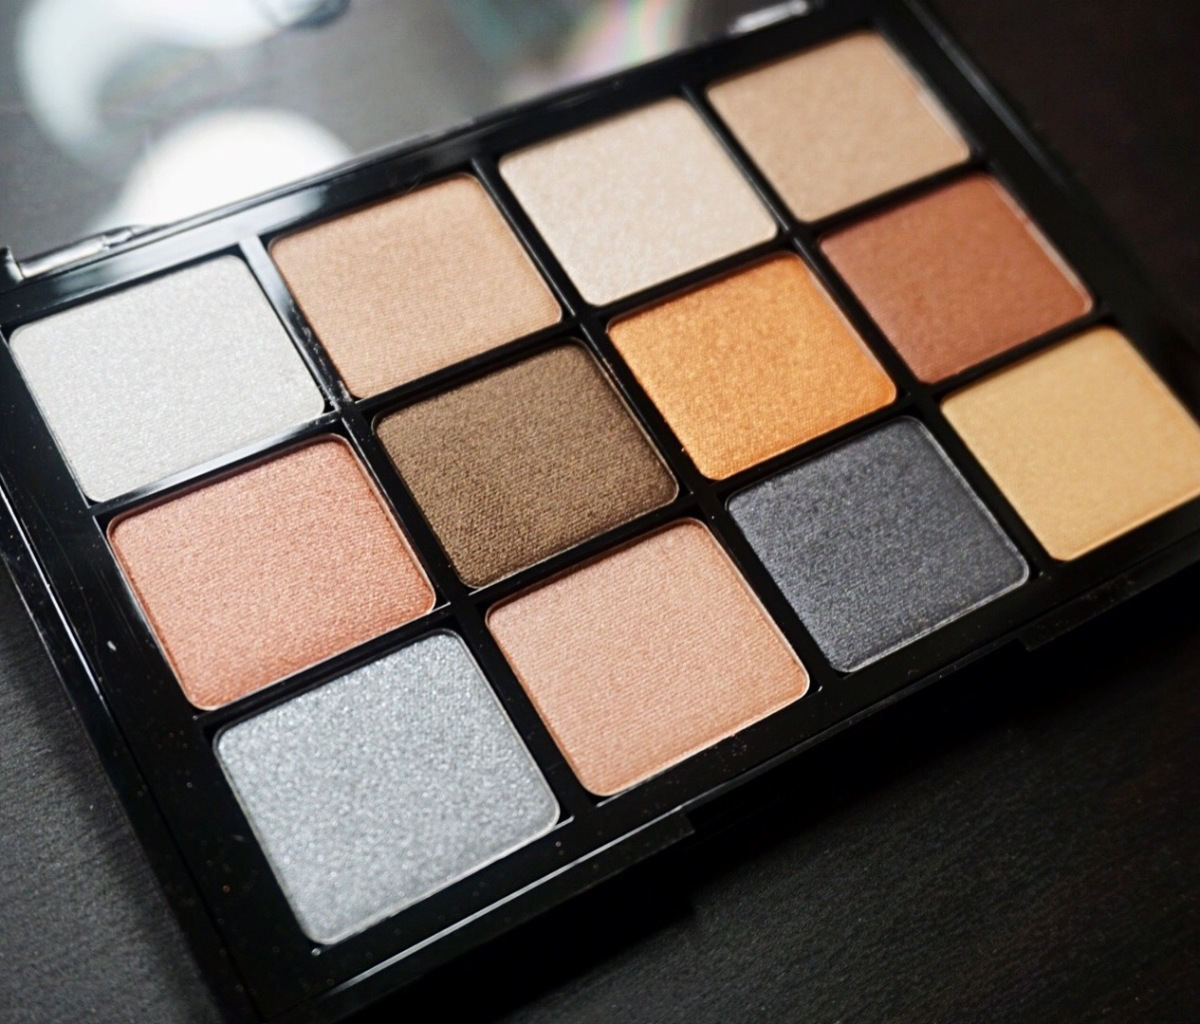 Viseart Sultry Muse Eyeshadow Palette Review & Swatches